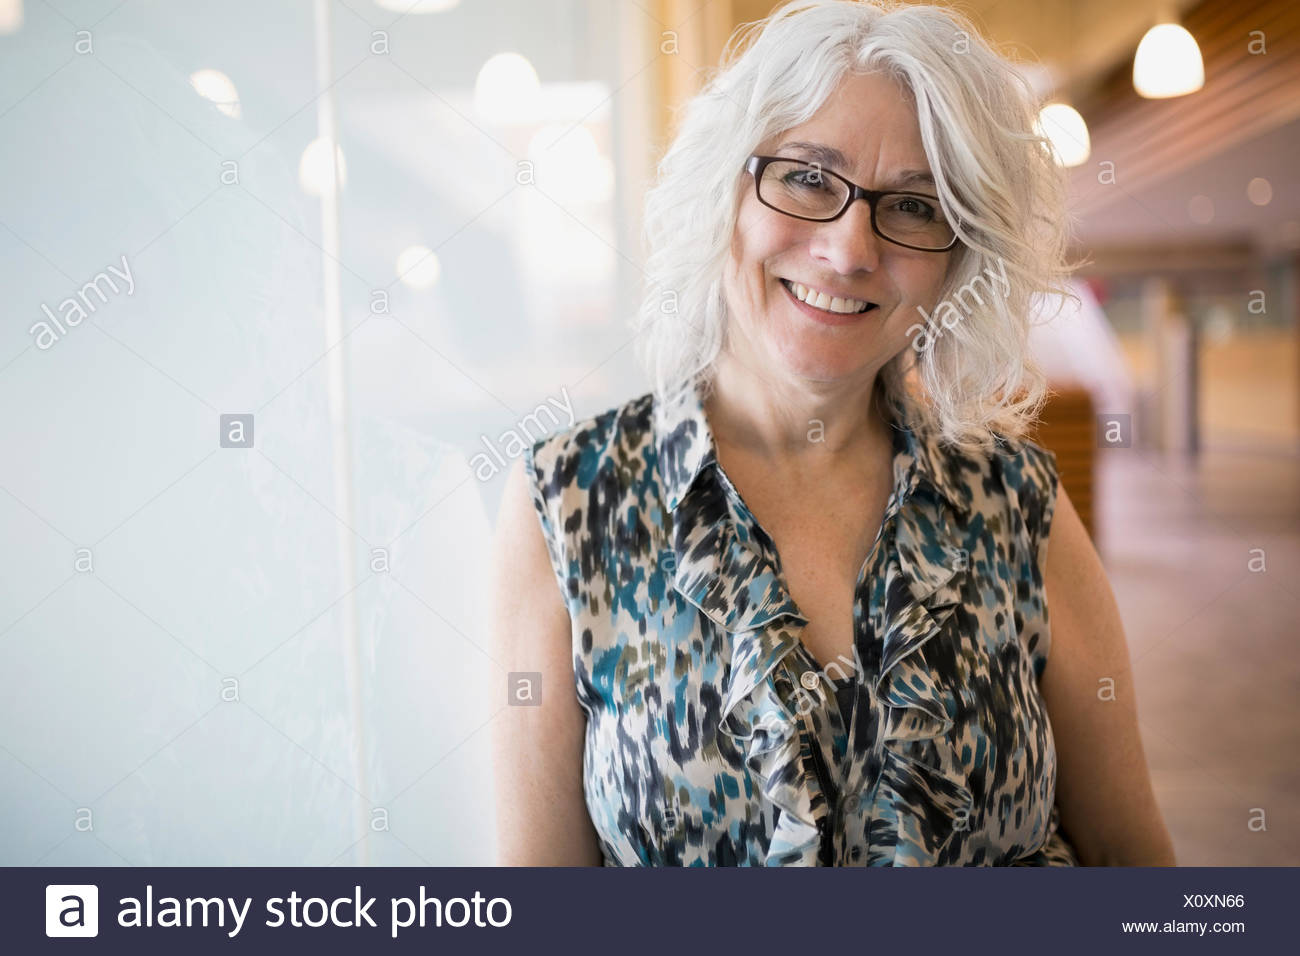 c60570b357 Portrait confident businesswoman with gray hair and eyeglasses - Stock Image